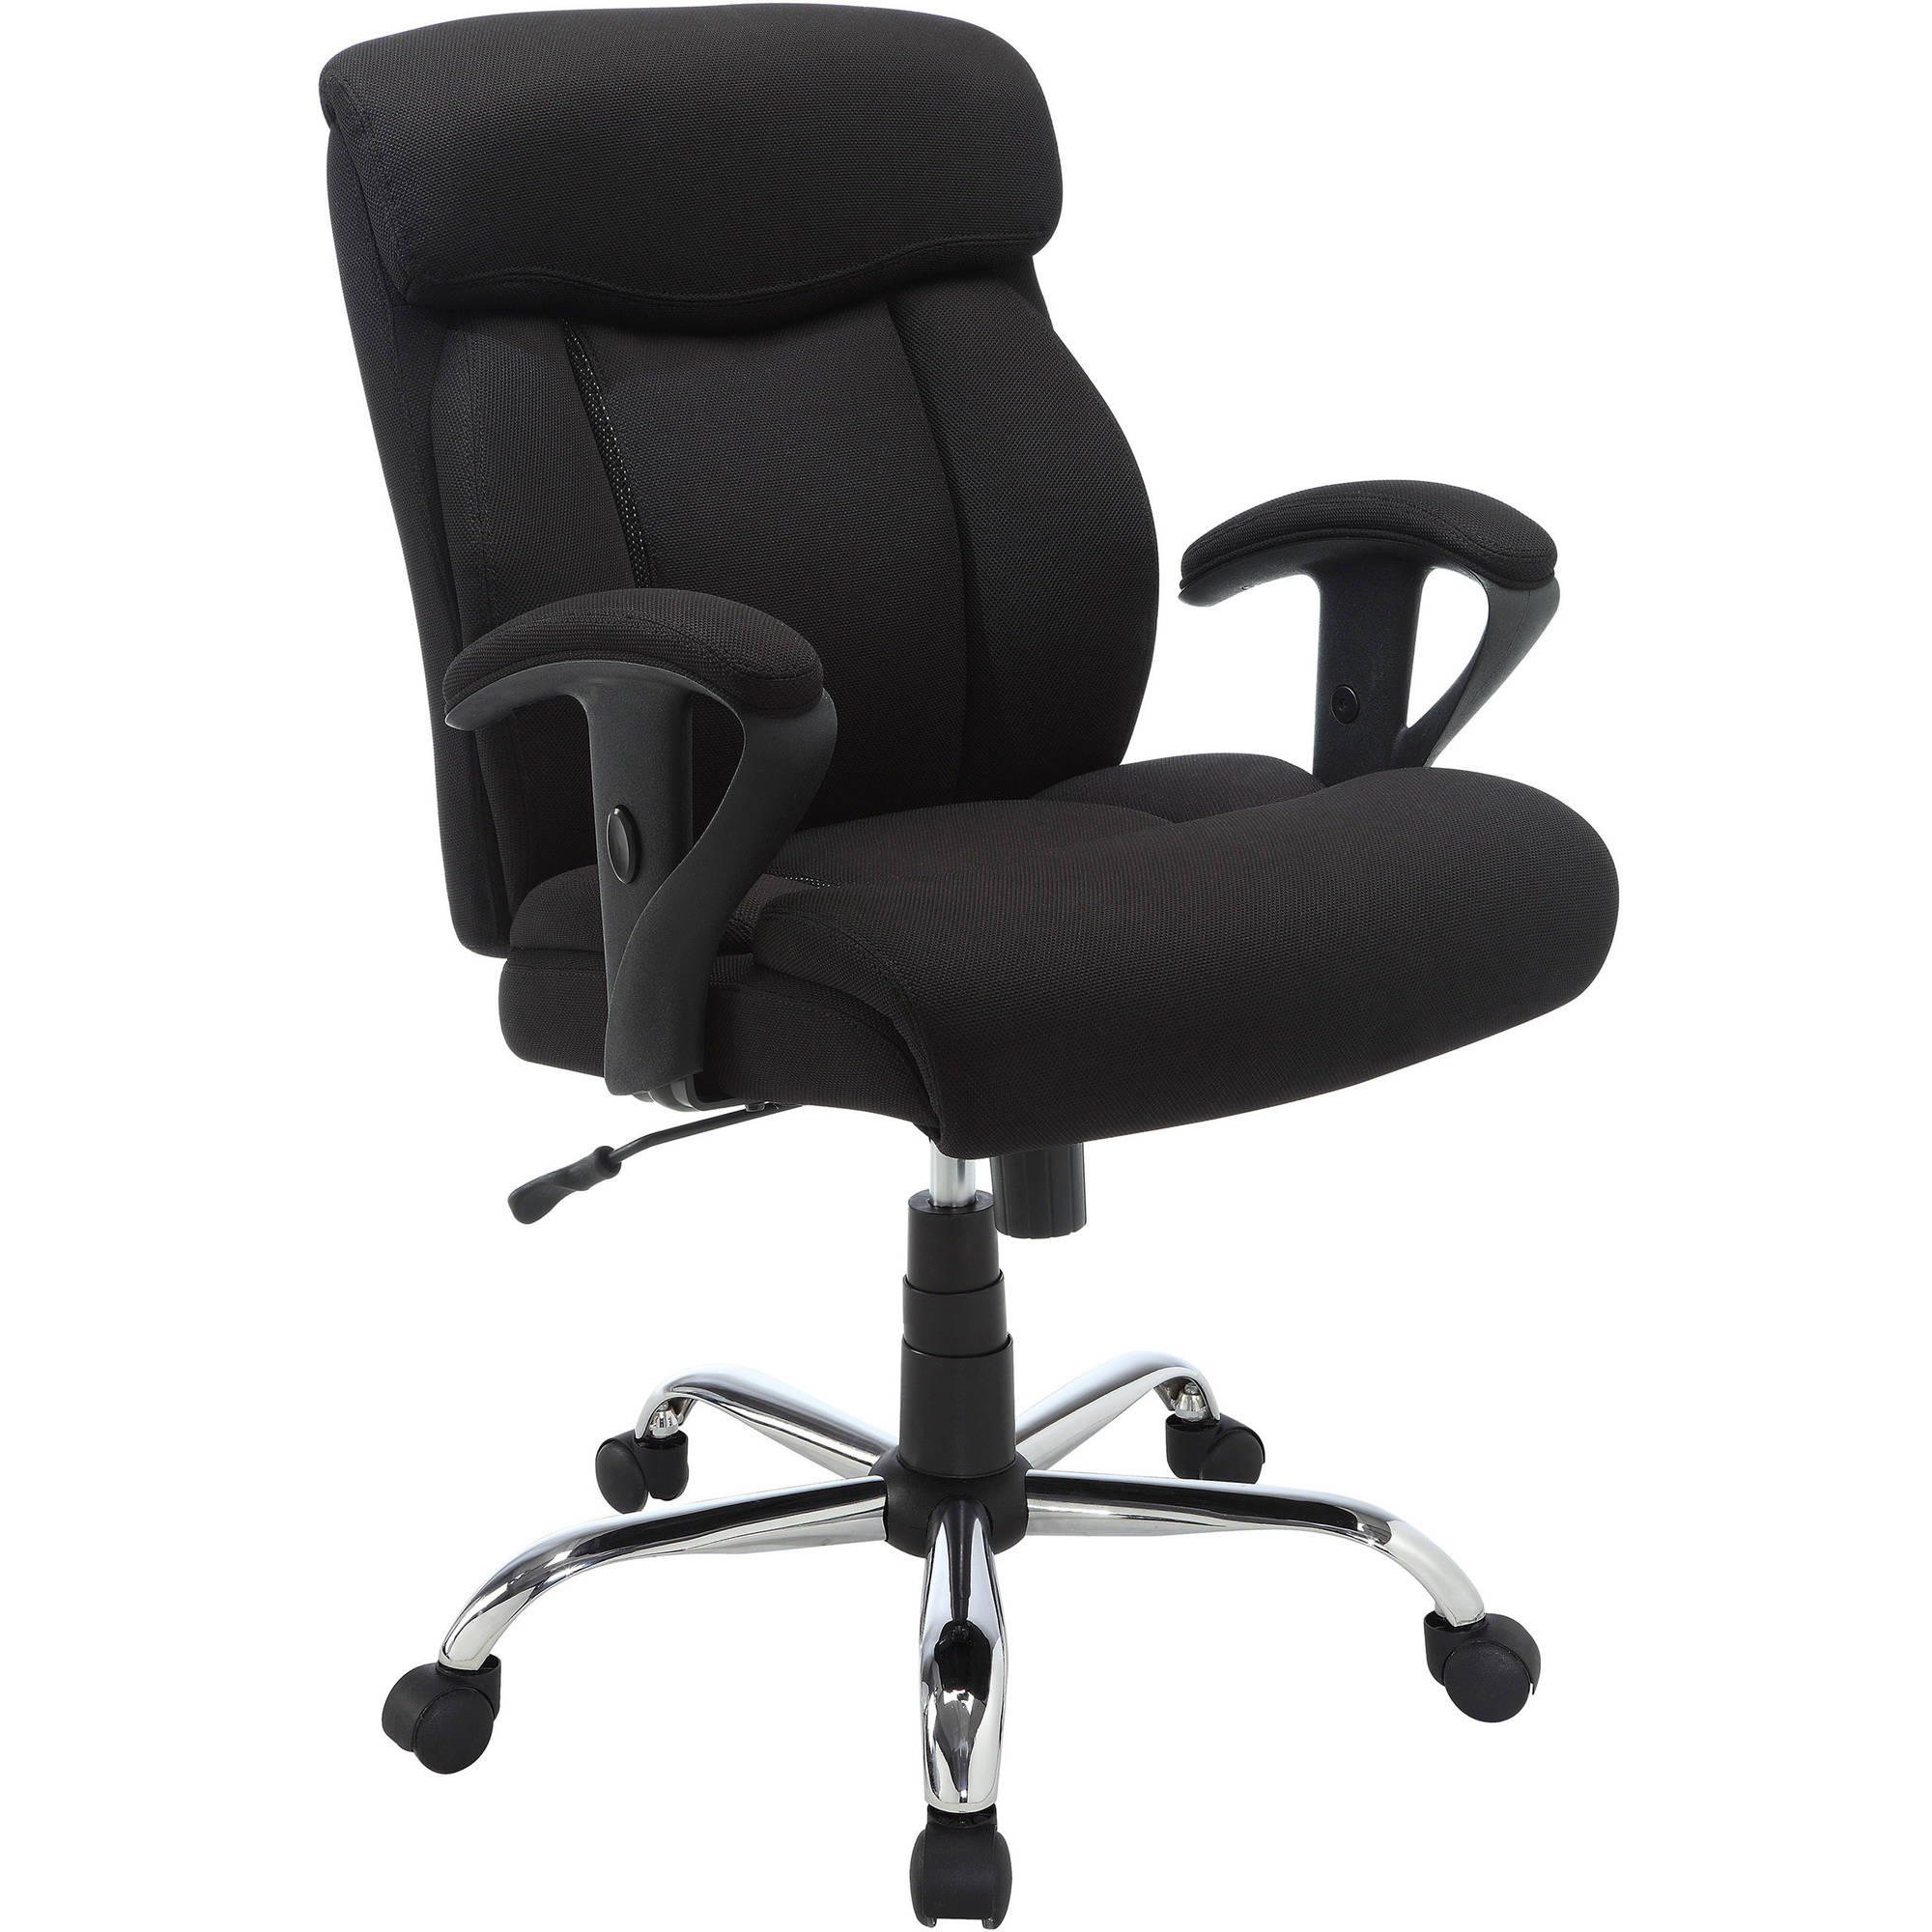 Prime Details About Black Office Chair Big Tall Manager Mesh Desk Furniture Heavy Duty 300Lb Max Ibusinesslaw Wood Chair Design Ideas Ibusinesslaworg